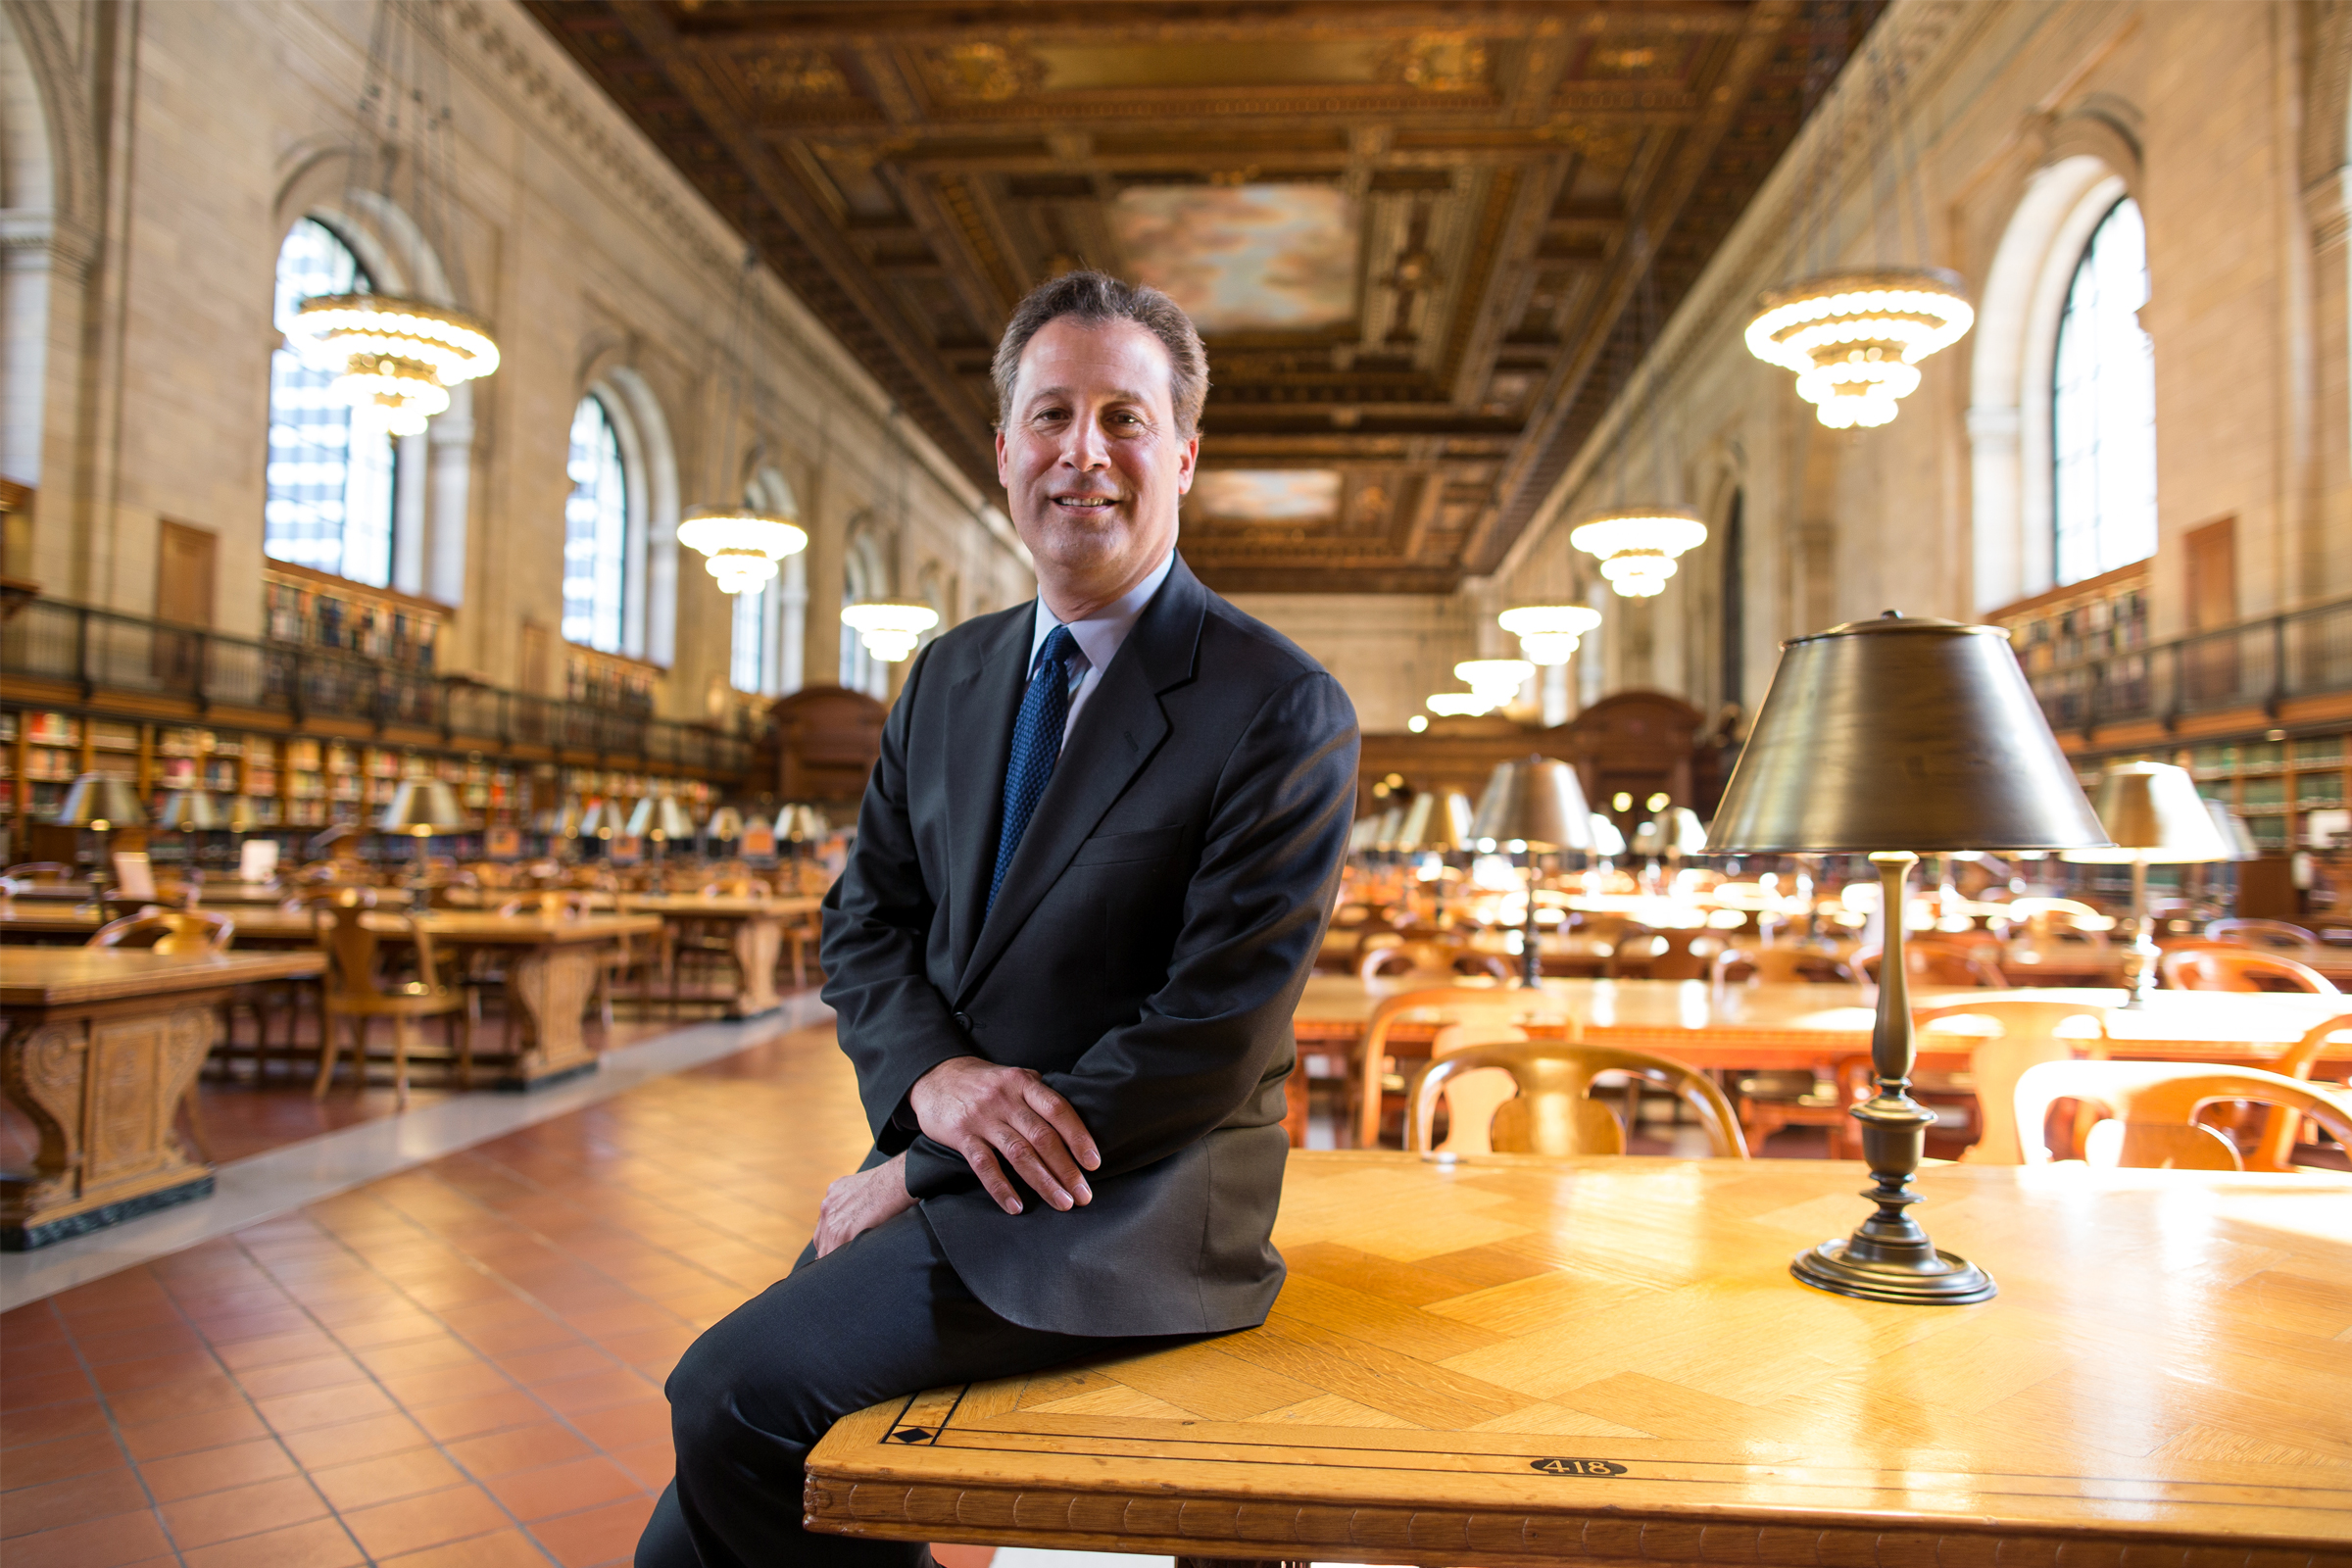 Tony Marx, President and CEO of the New York Public Library (NYPL) in the Rose Main Reading Room of the Stephen A. Schwarzman Building on New York's Fifth Avenue (picture © NYPL).